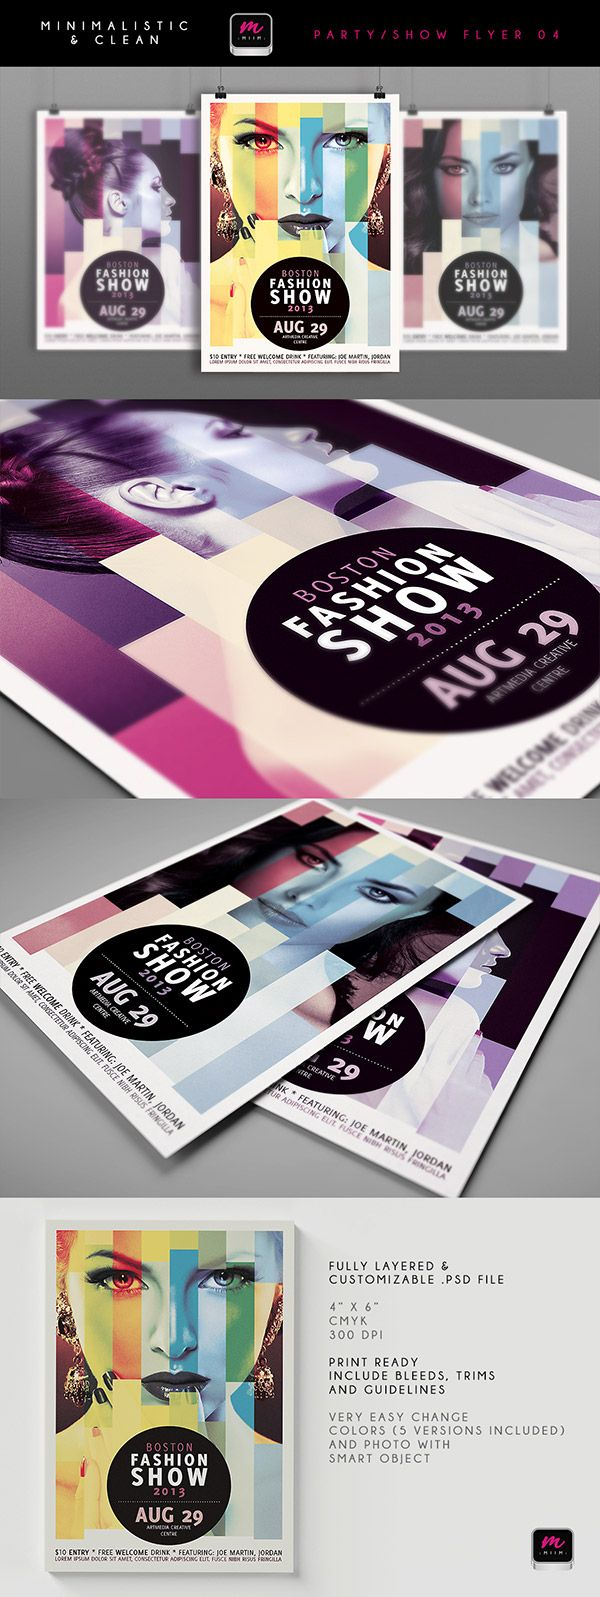 12 minimalistic & clean party & event flyer templates - only $14